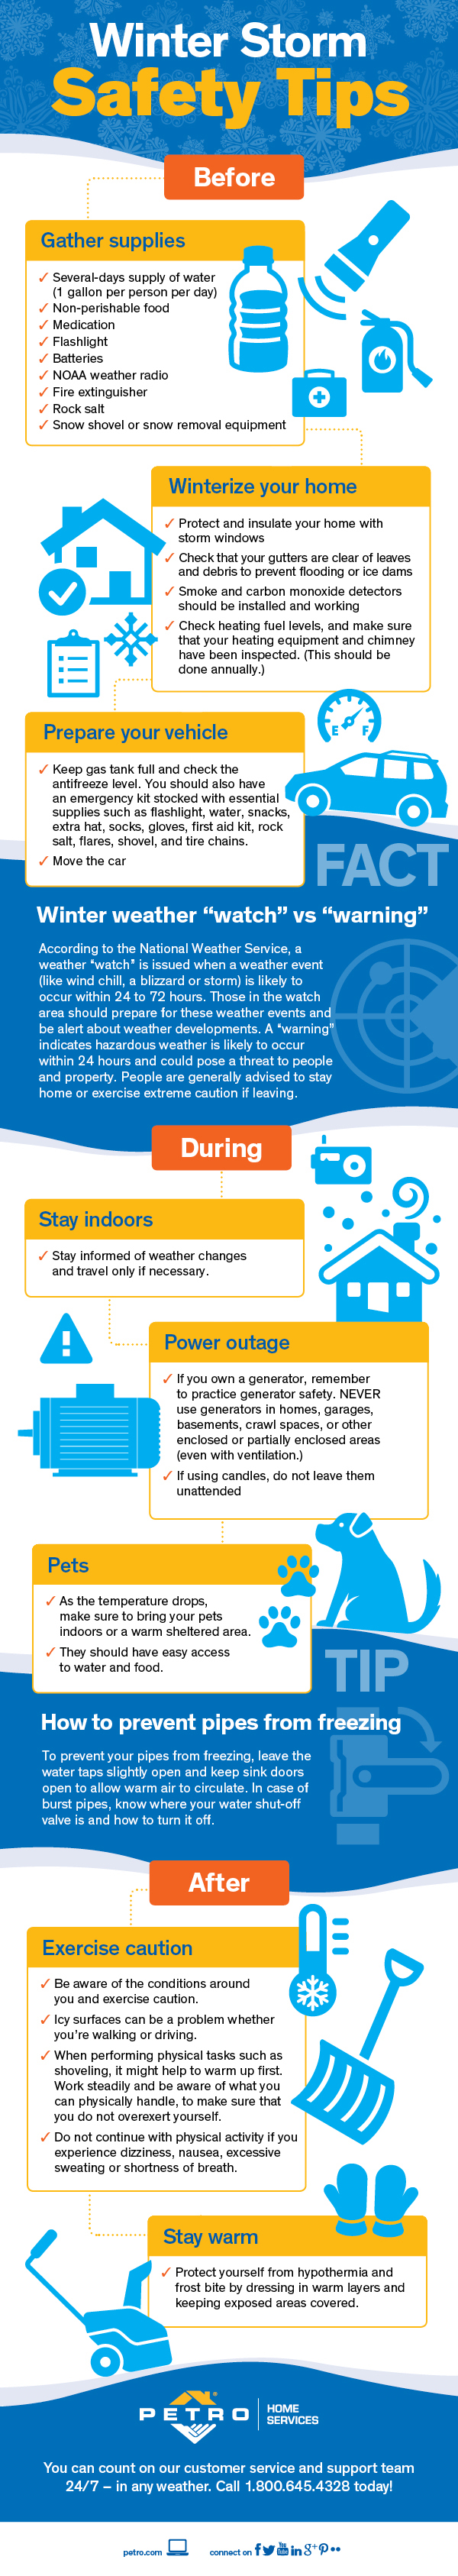 winter storm safety tips infographic